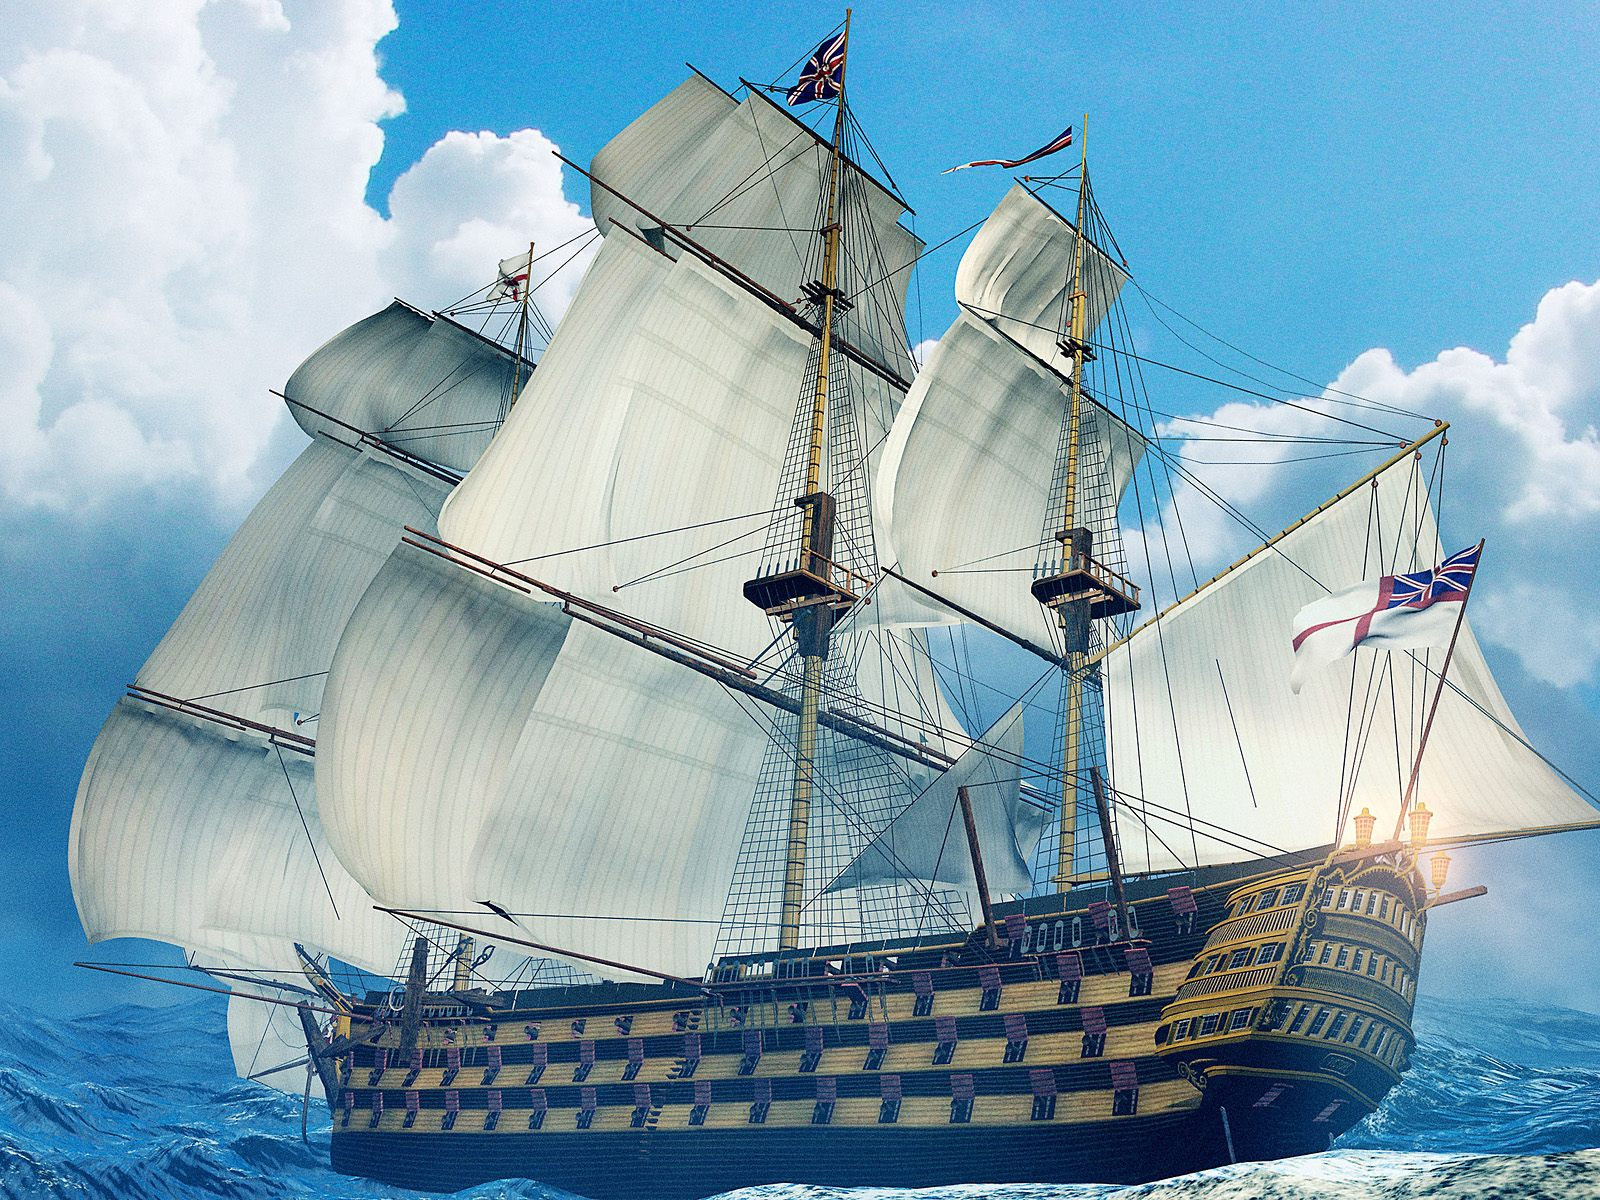 wallpaper huge ship 3d graphics. Wallpapers 3d for desktop, 3d Wallpaper